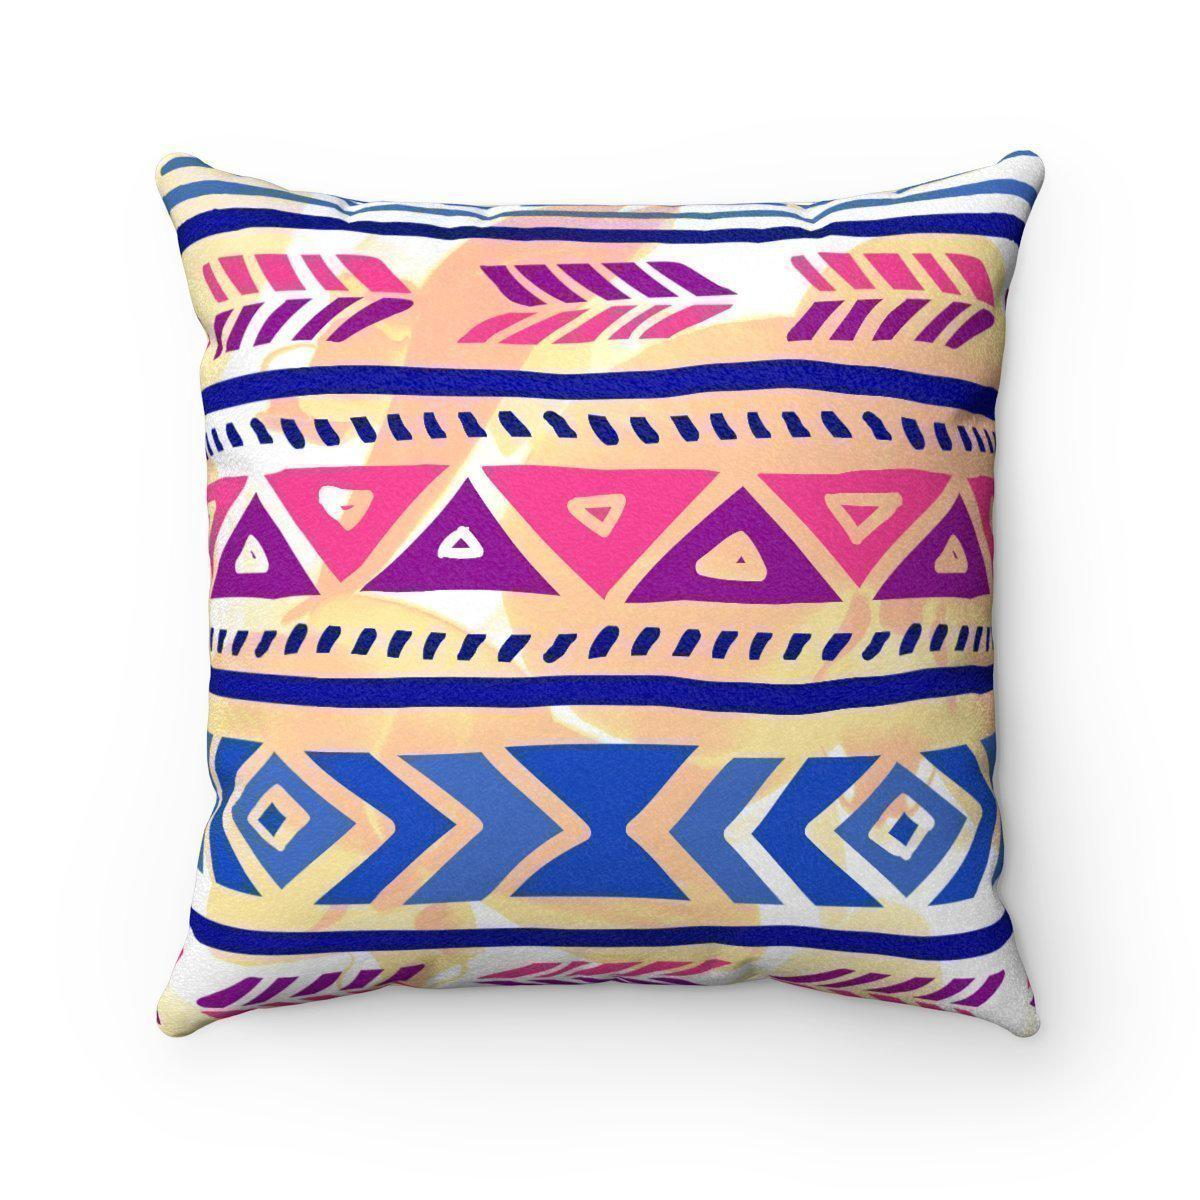 Purple Faux suede 2 in 1 Mexican decorative pillow w/insert-Home Decor - Decorative Accents - Pillows & Throws - Decorative Pillows-Maison d'Elite-14x14-Très Elite